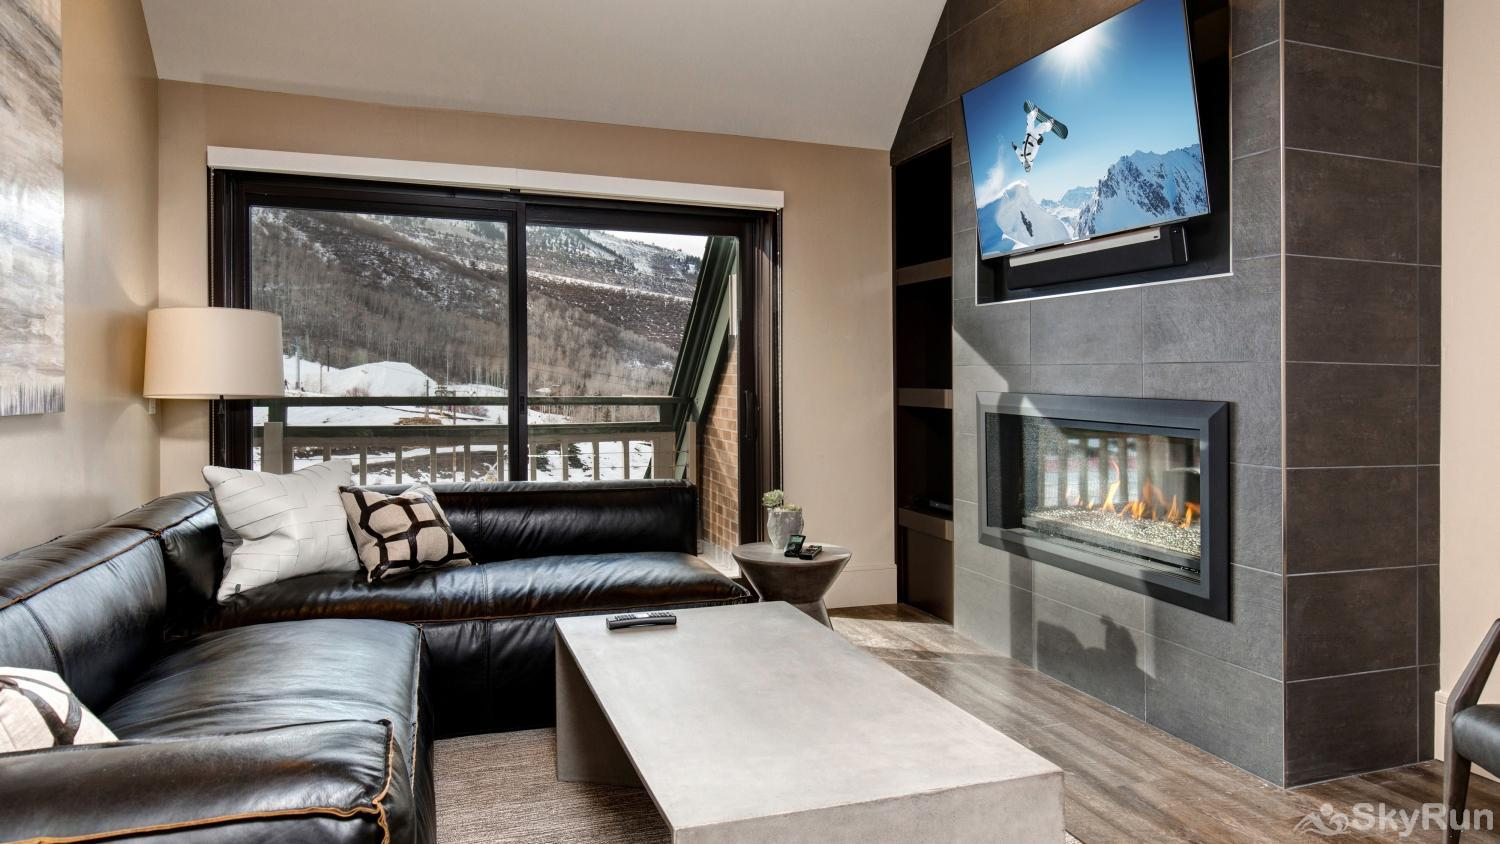 Village Loft 2 Bedroom Ski-In Ski-Out! Great Room and View